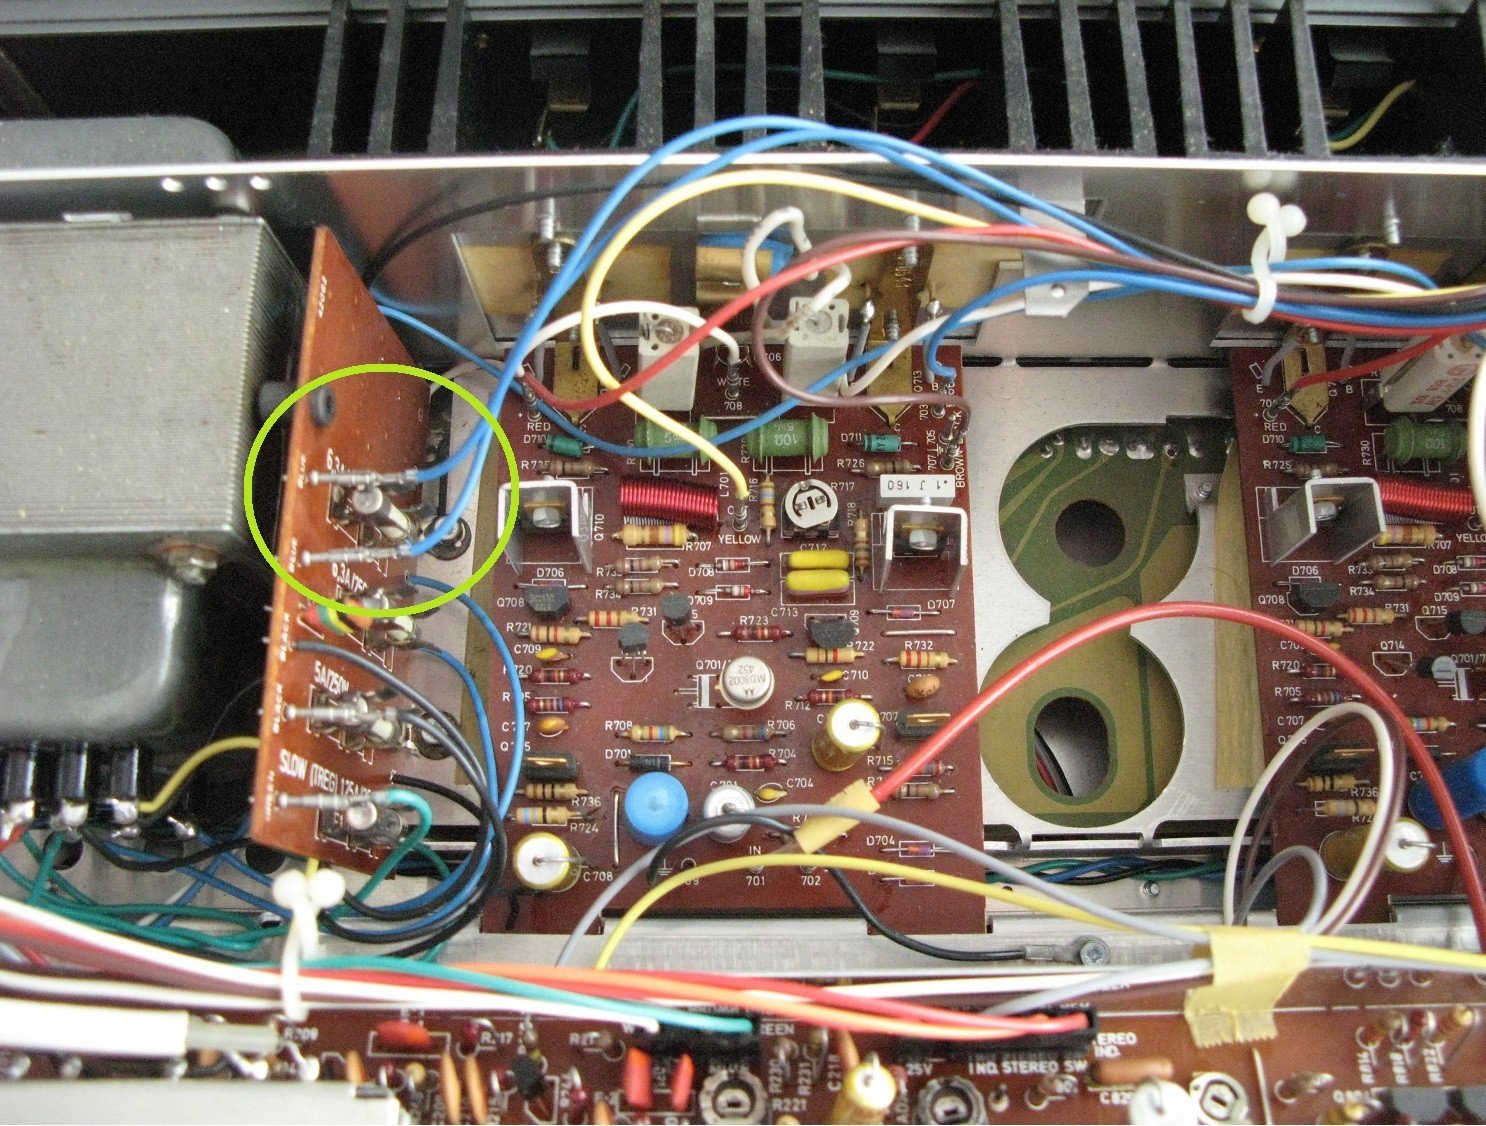 hight resolution of photo of the inside of my tandberg tr 1040 with problematic cables marked